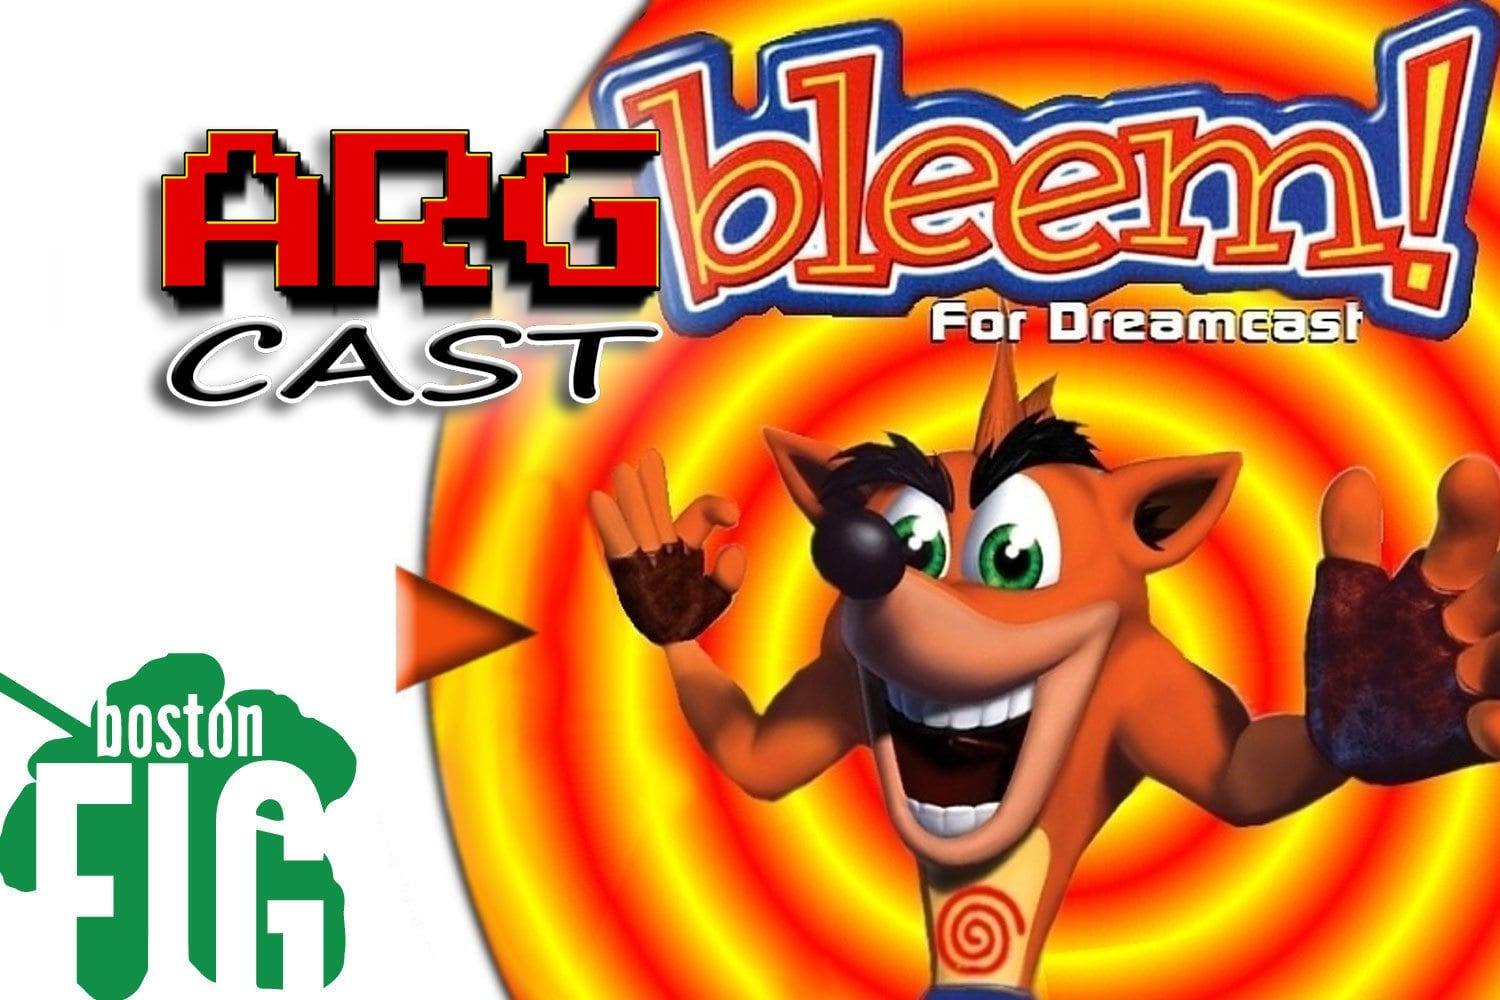 ARGcast #79: Walking The Line with Bleem and Boston FIG 2017